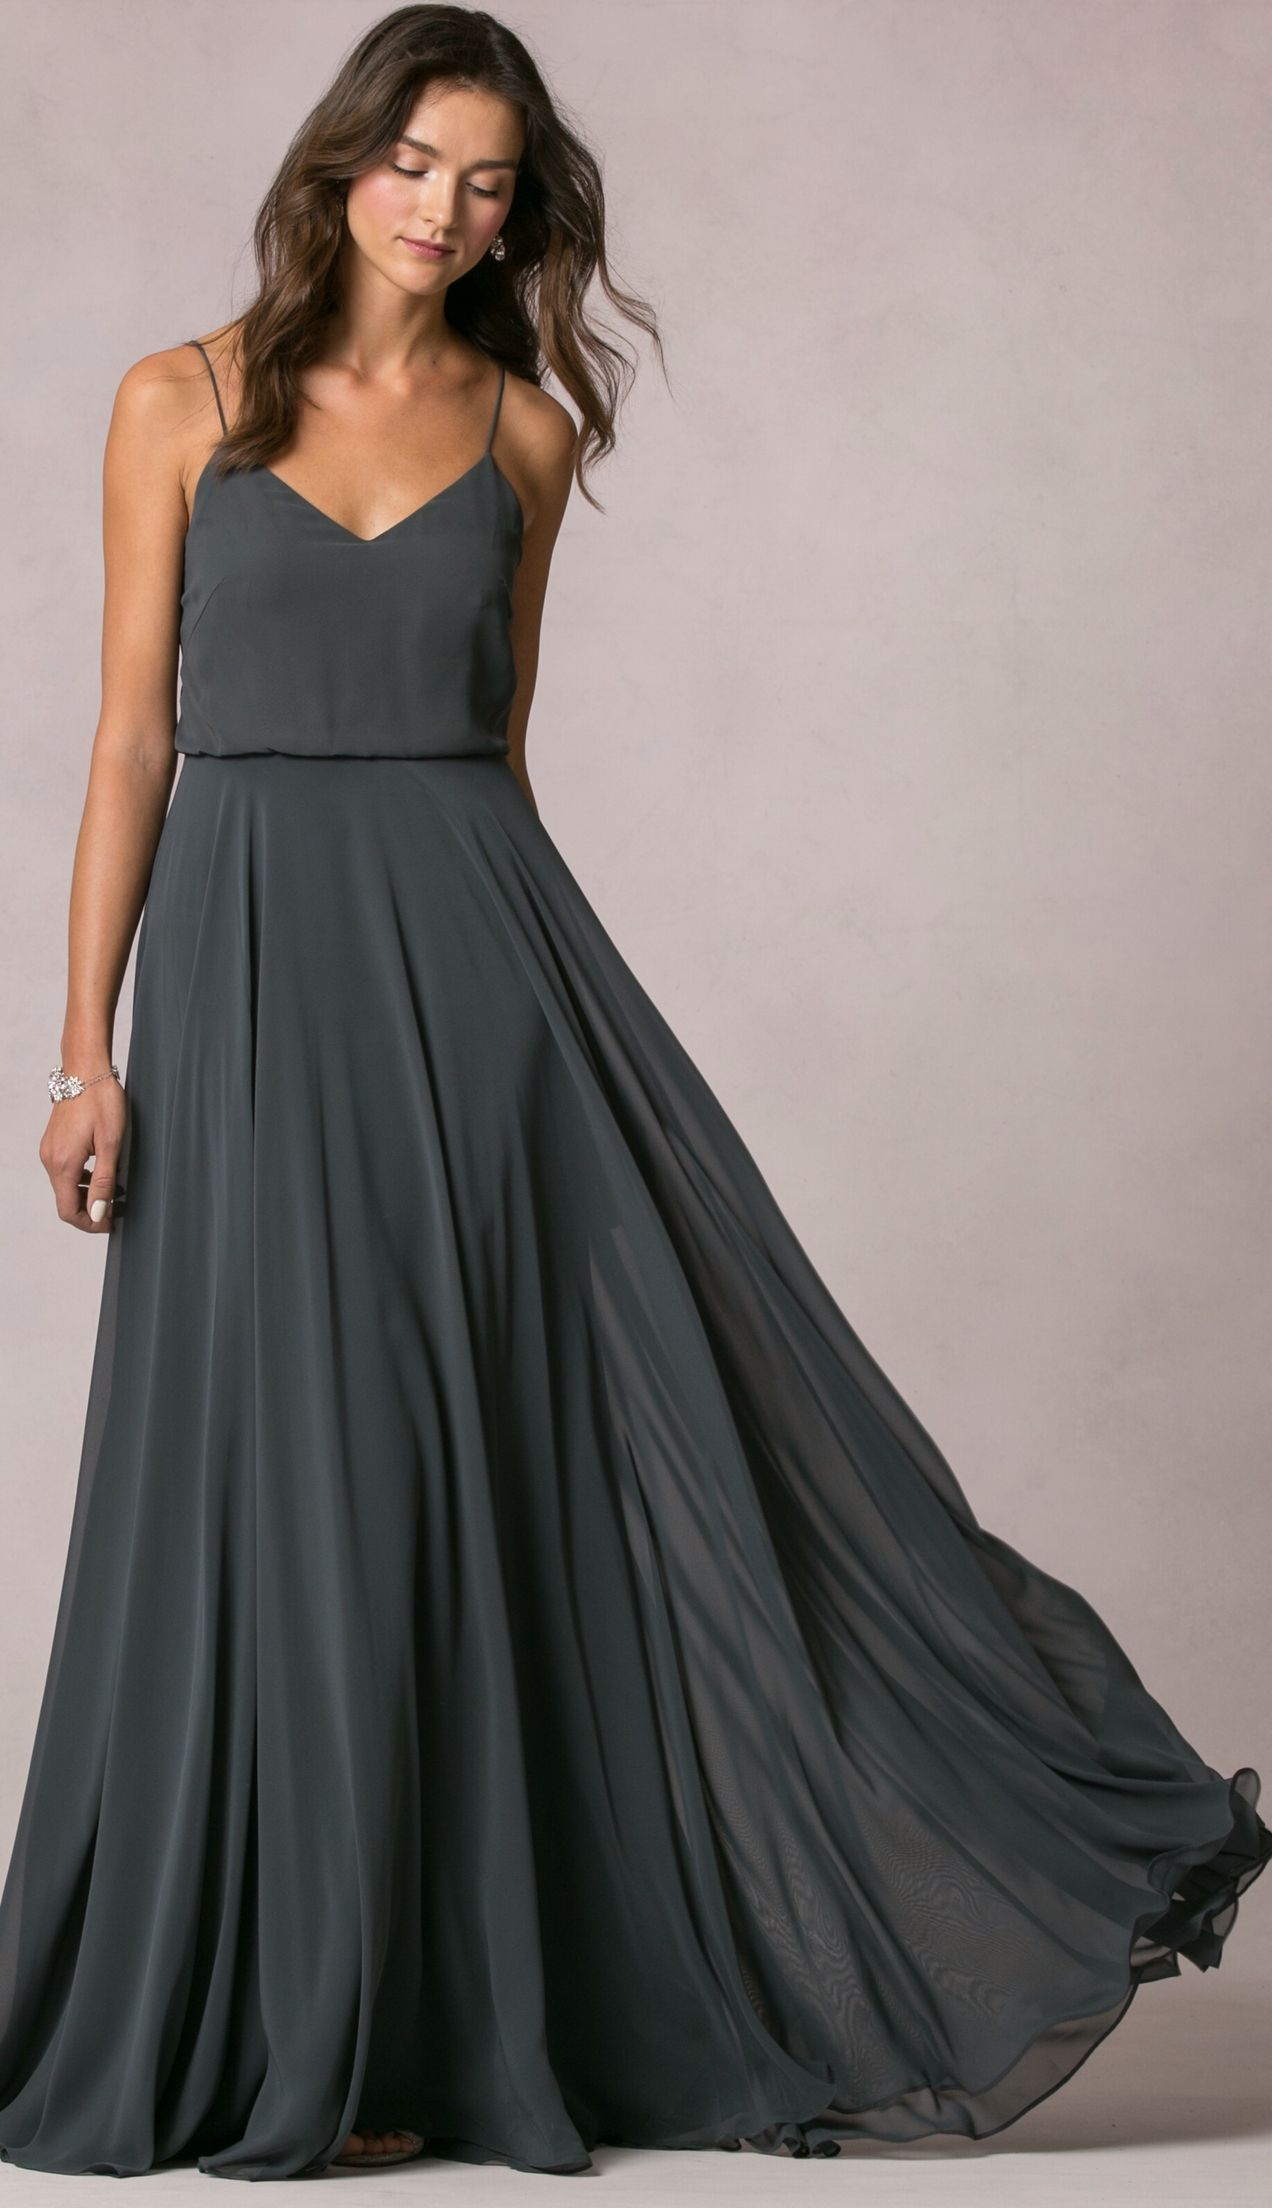 Inesse dress by jenny yoo available in 27 chiffon colors wedding inesse dress by jenny yoo available in 27 chiffon colors long black bridesmaid dressesgrey ombrellifo Images